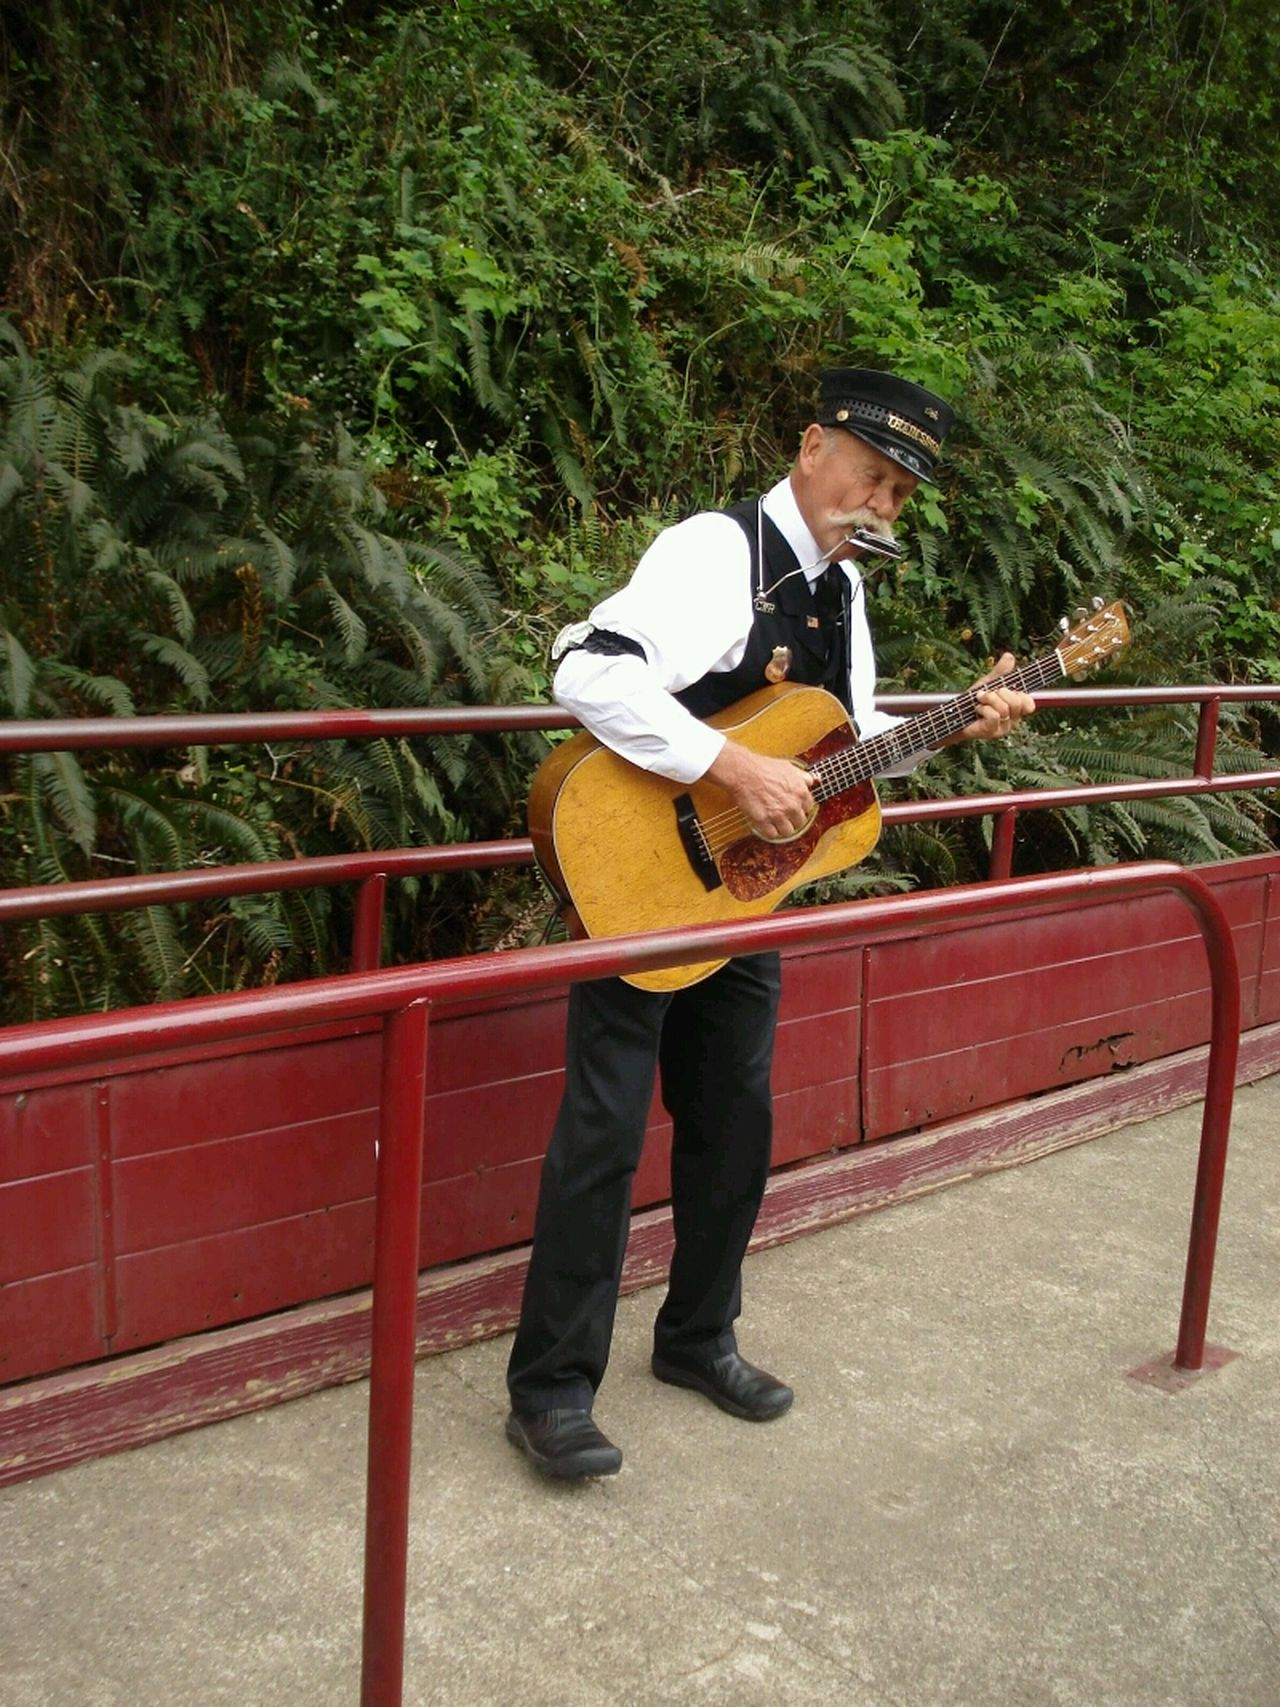 Music Arts Culture And Entertainment Musical Instrument Skunk Train Willits California To Fort Bragg California Playing Music Train